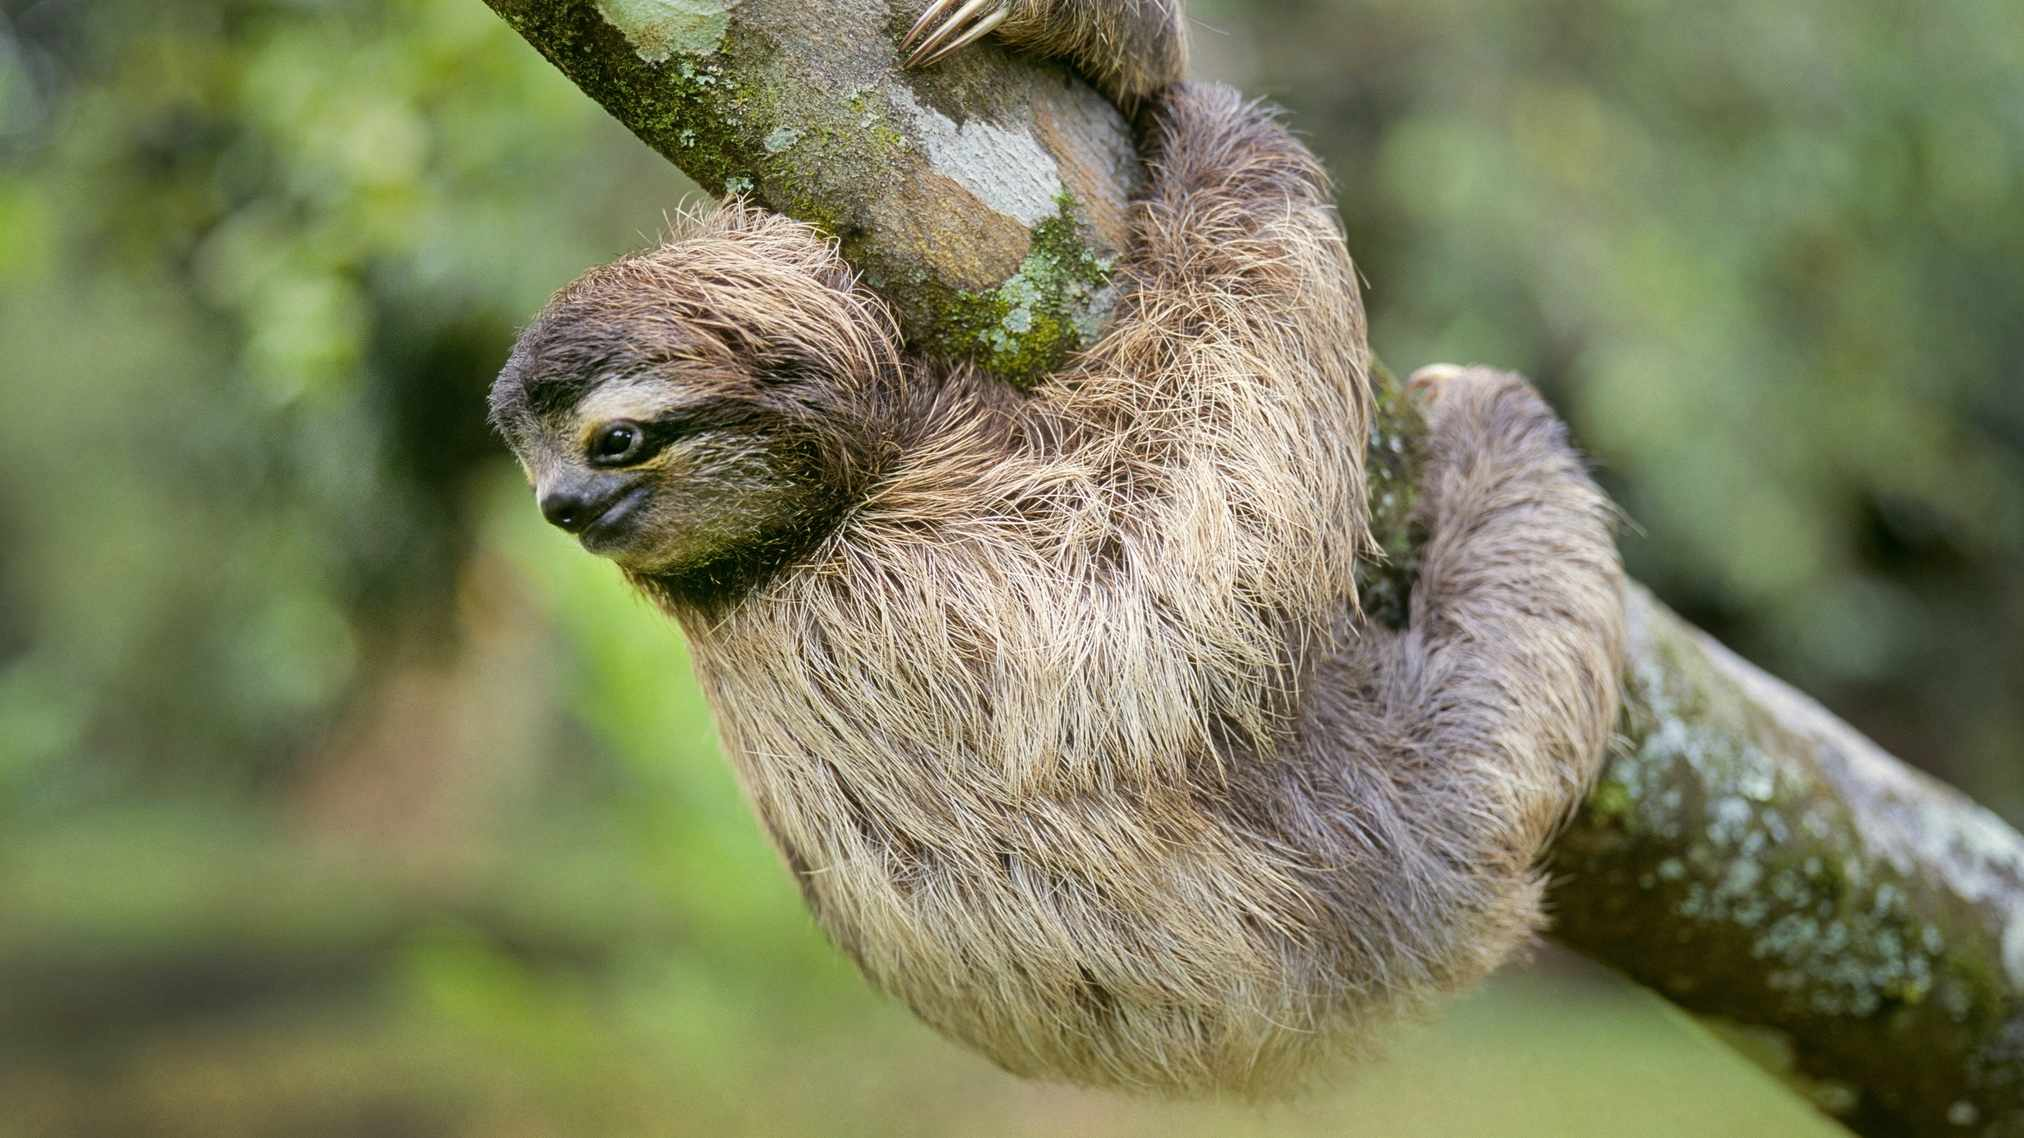 Portrait of a three-toed sloth, Bradypus variegatus, a rare and endangered mammal of the rain forest canopy © Getty Images